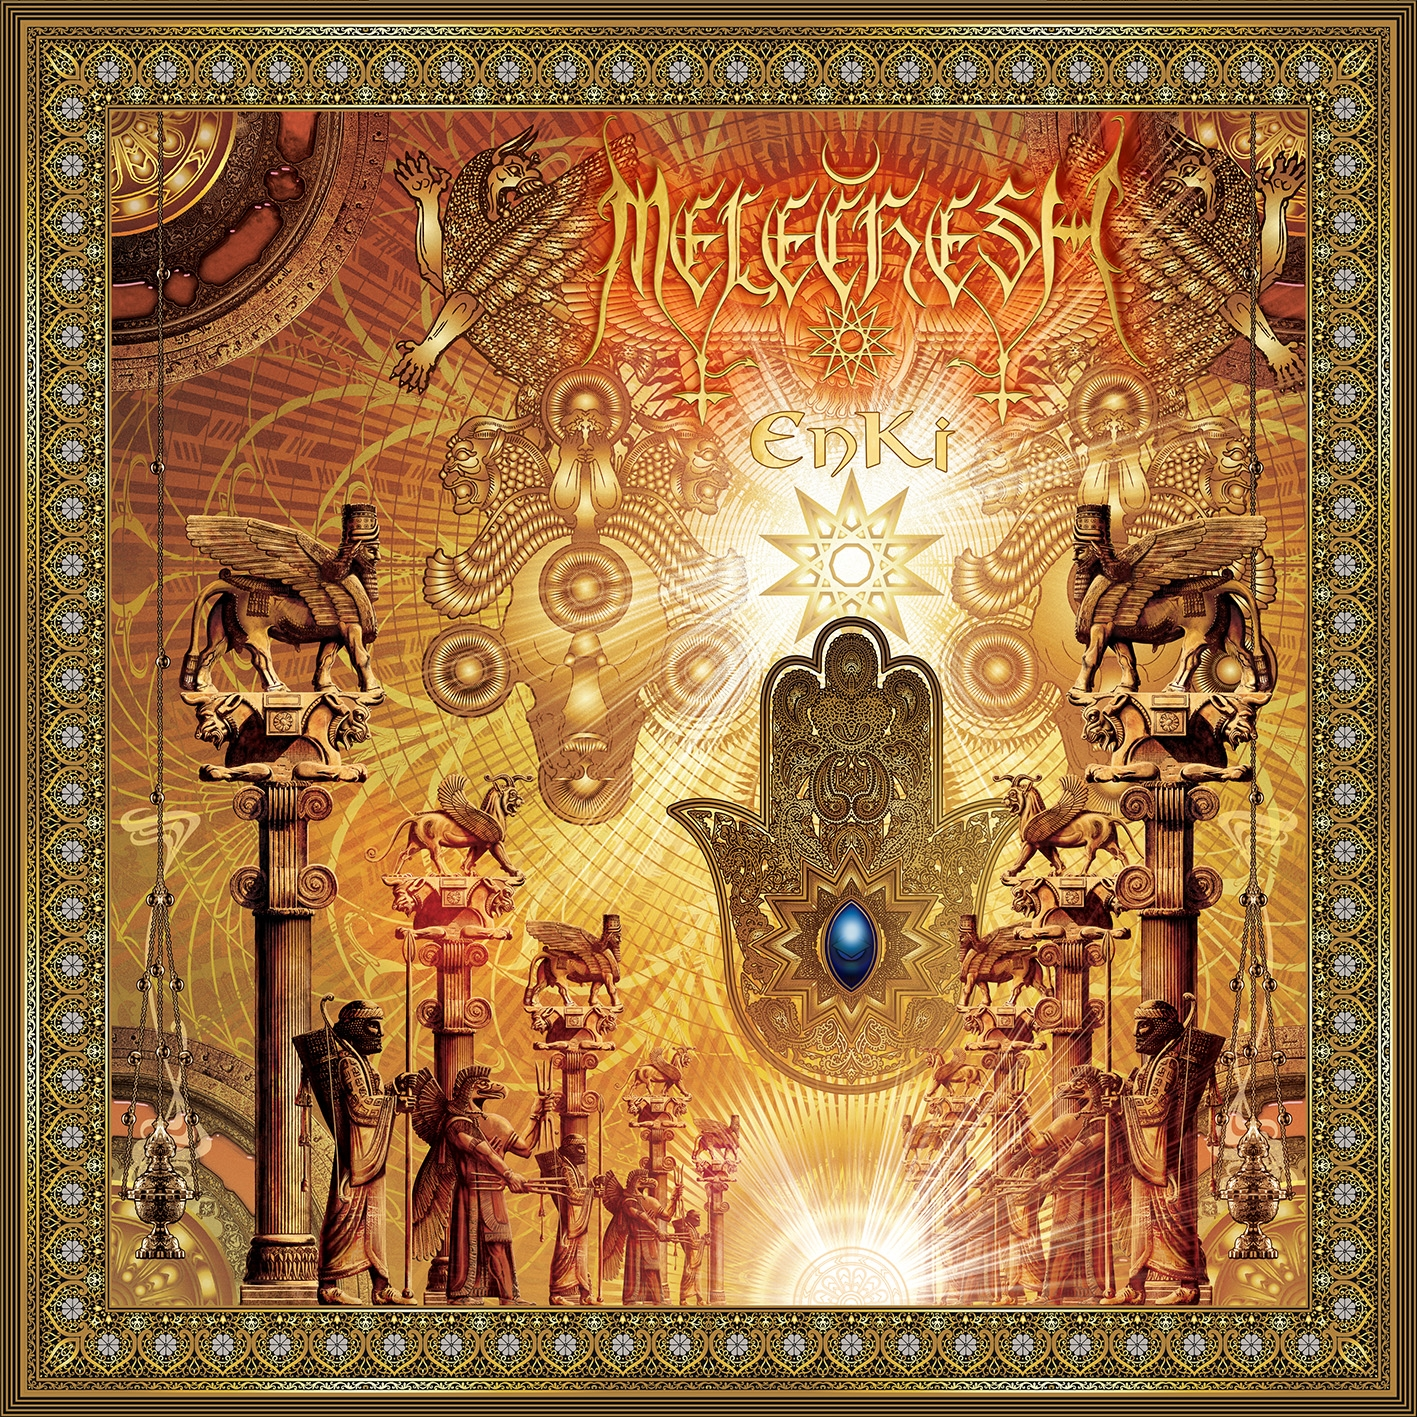 Melechesh – Enki Review